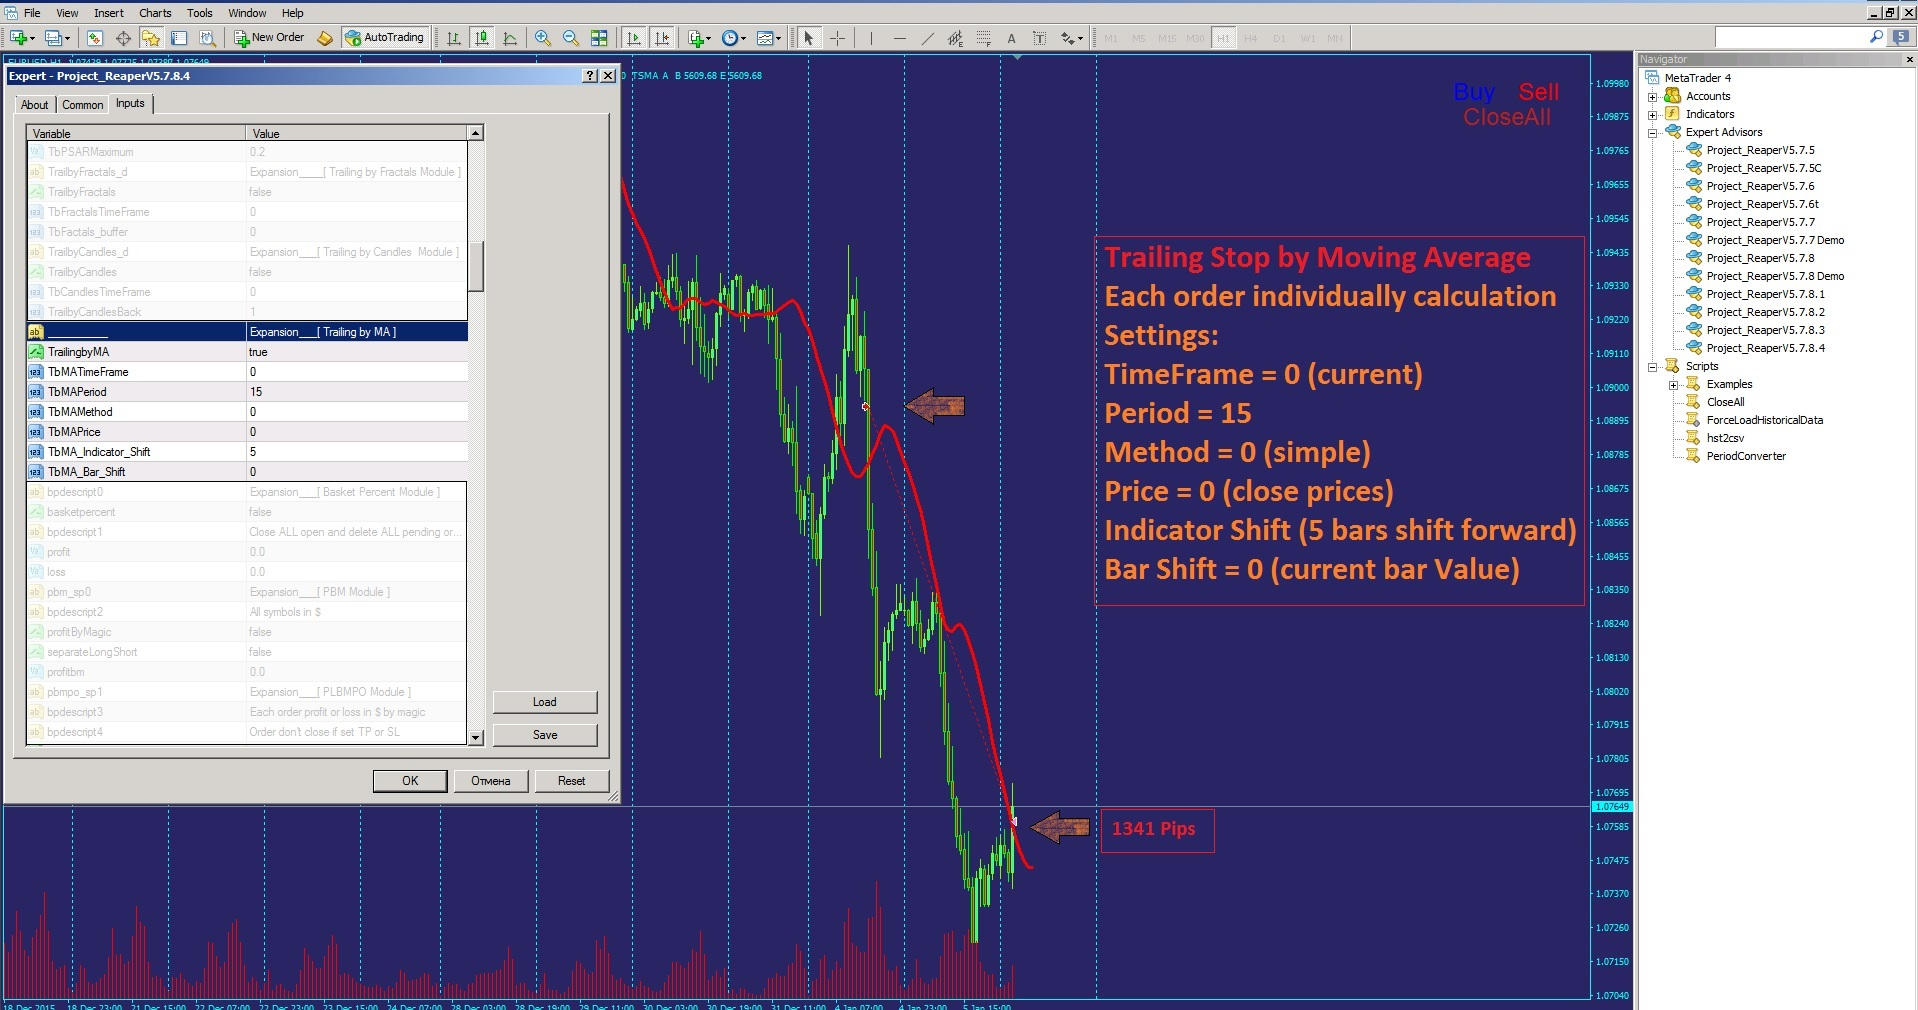 Trailing by Moving Average Trailing stop by Moving Average